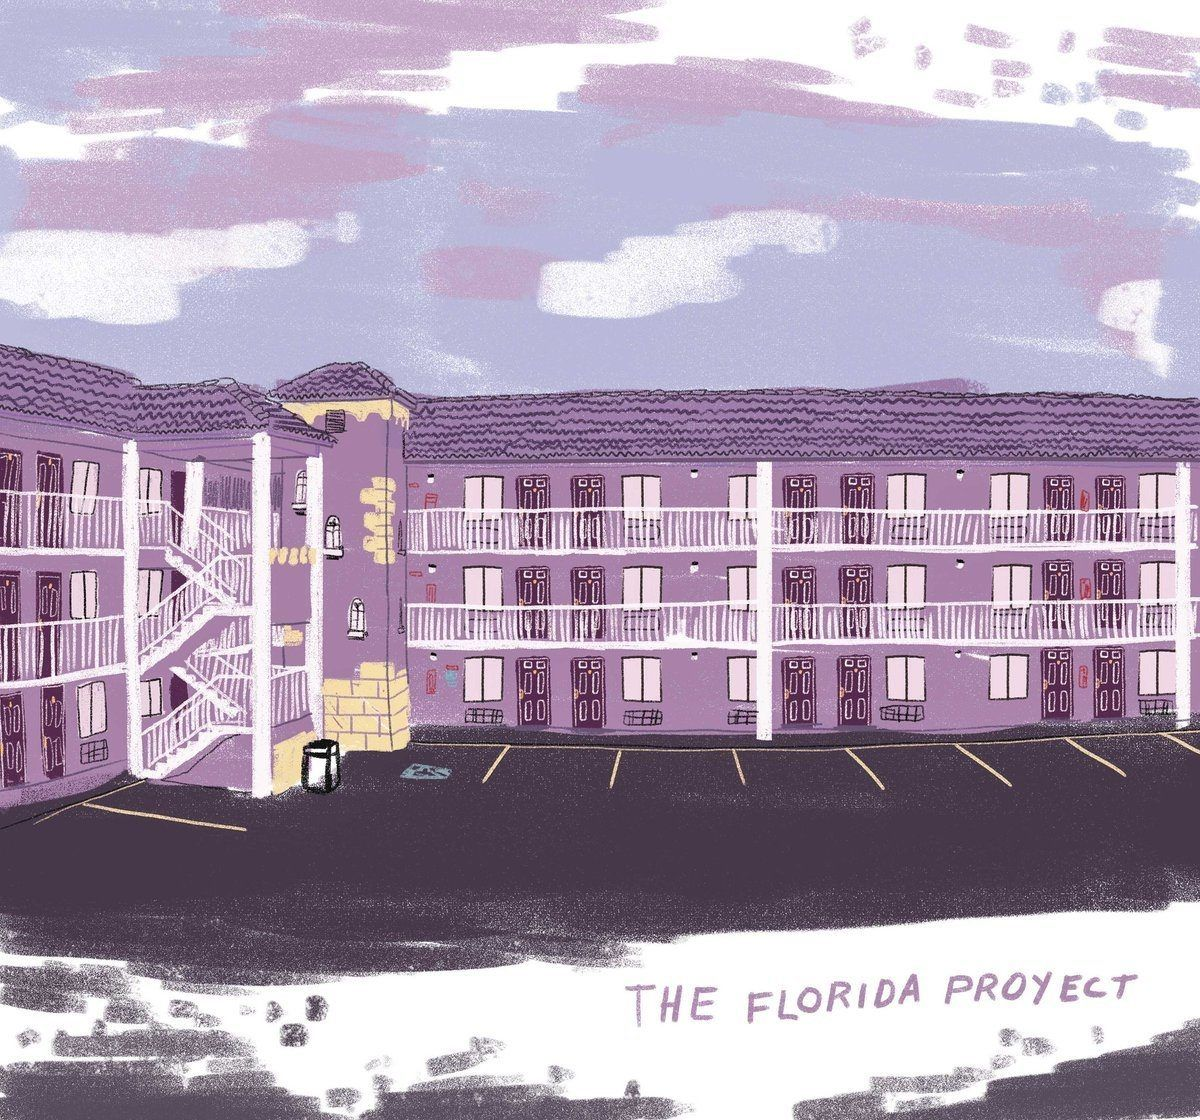 The Florida Project | A24